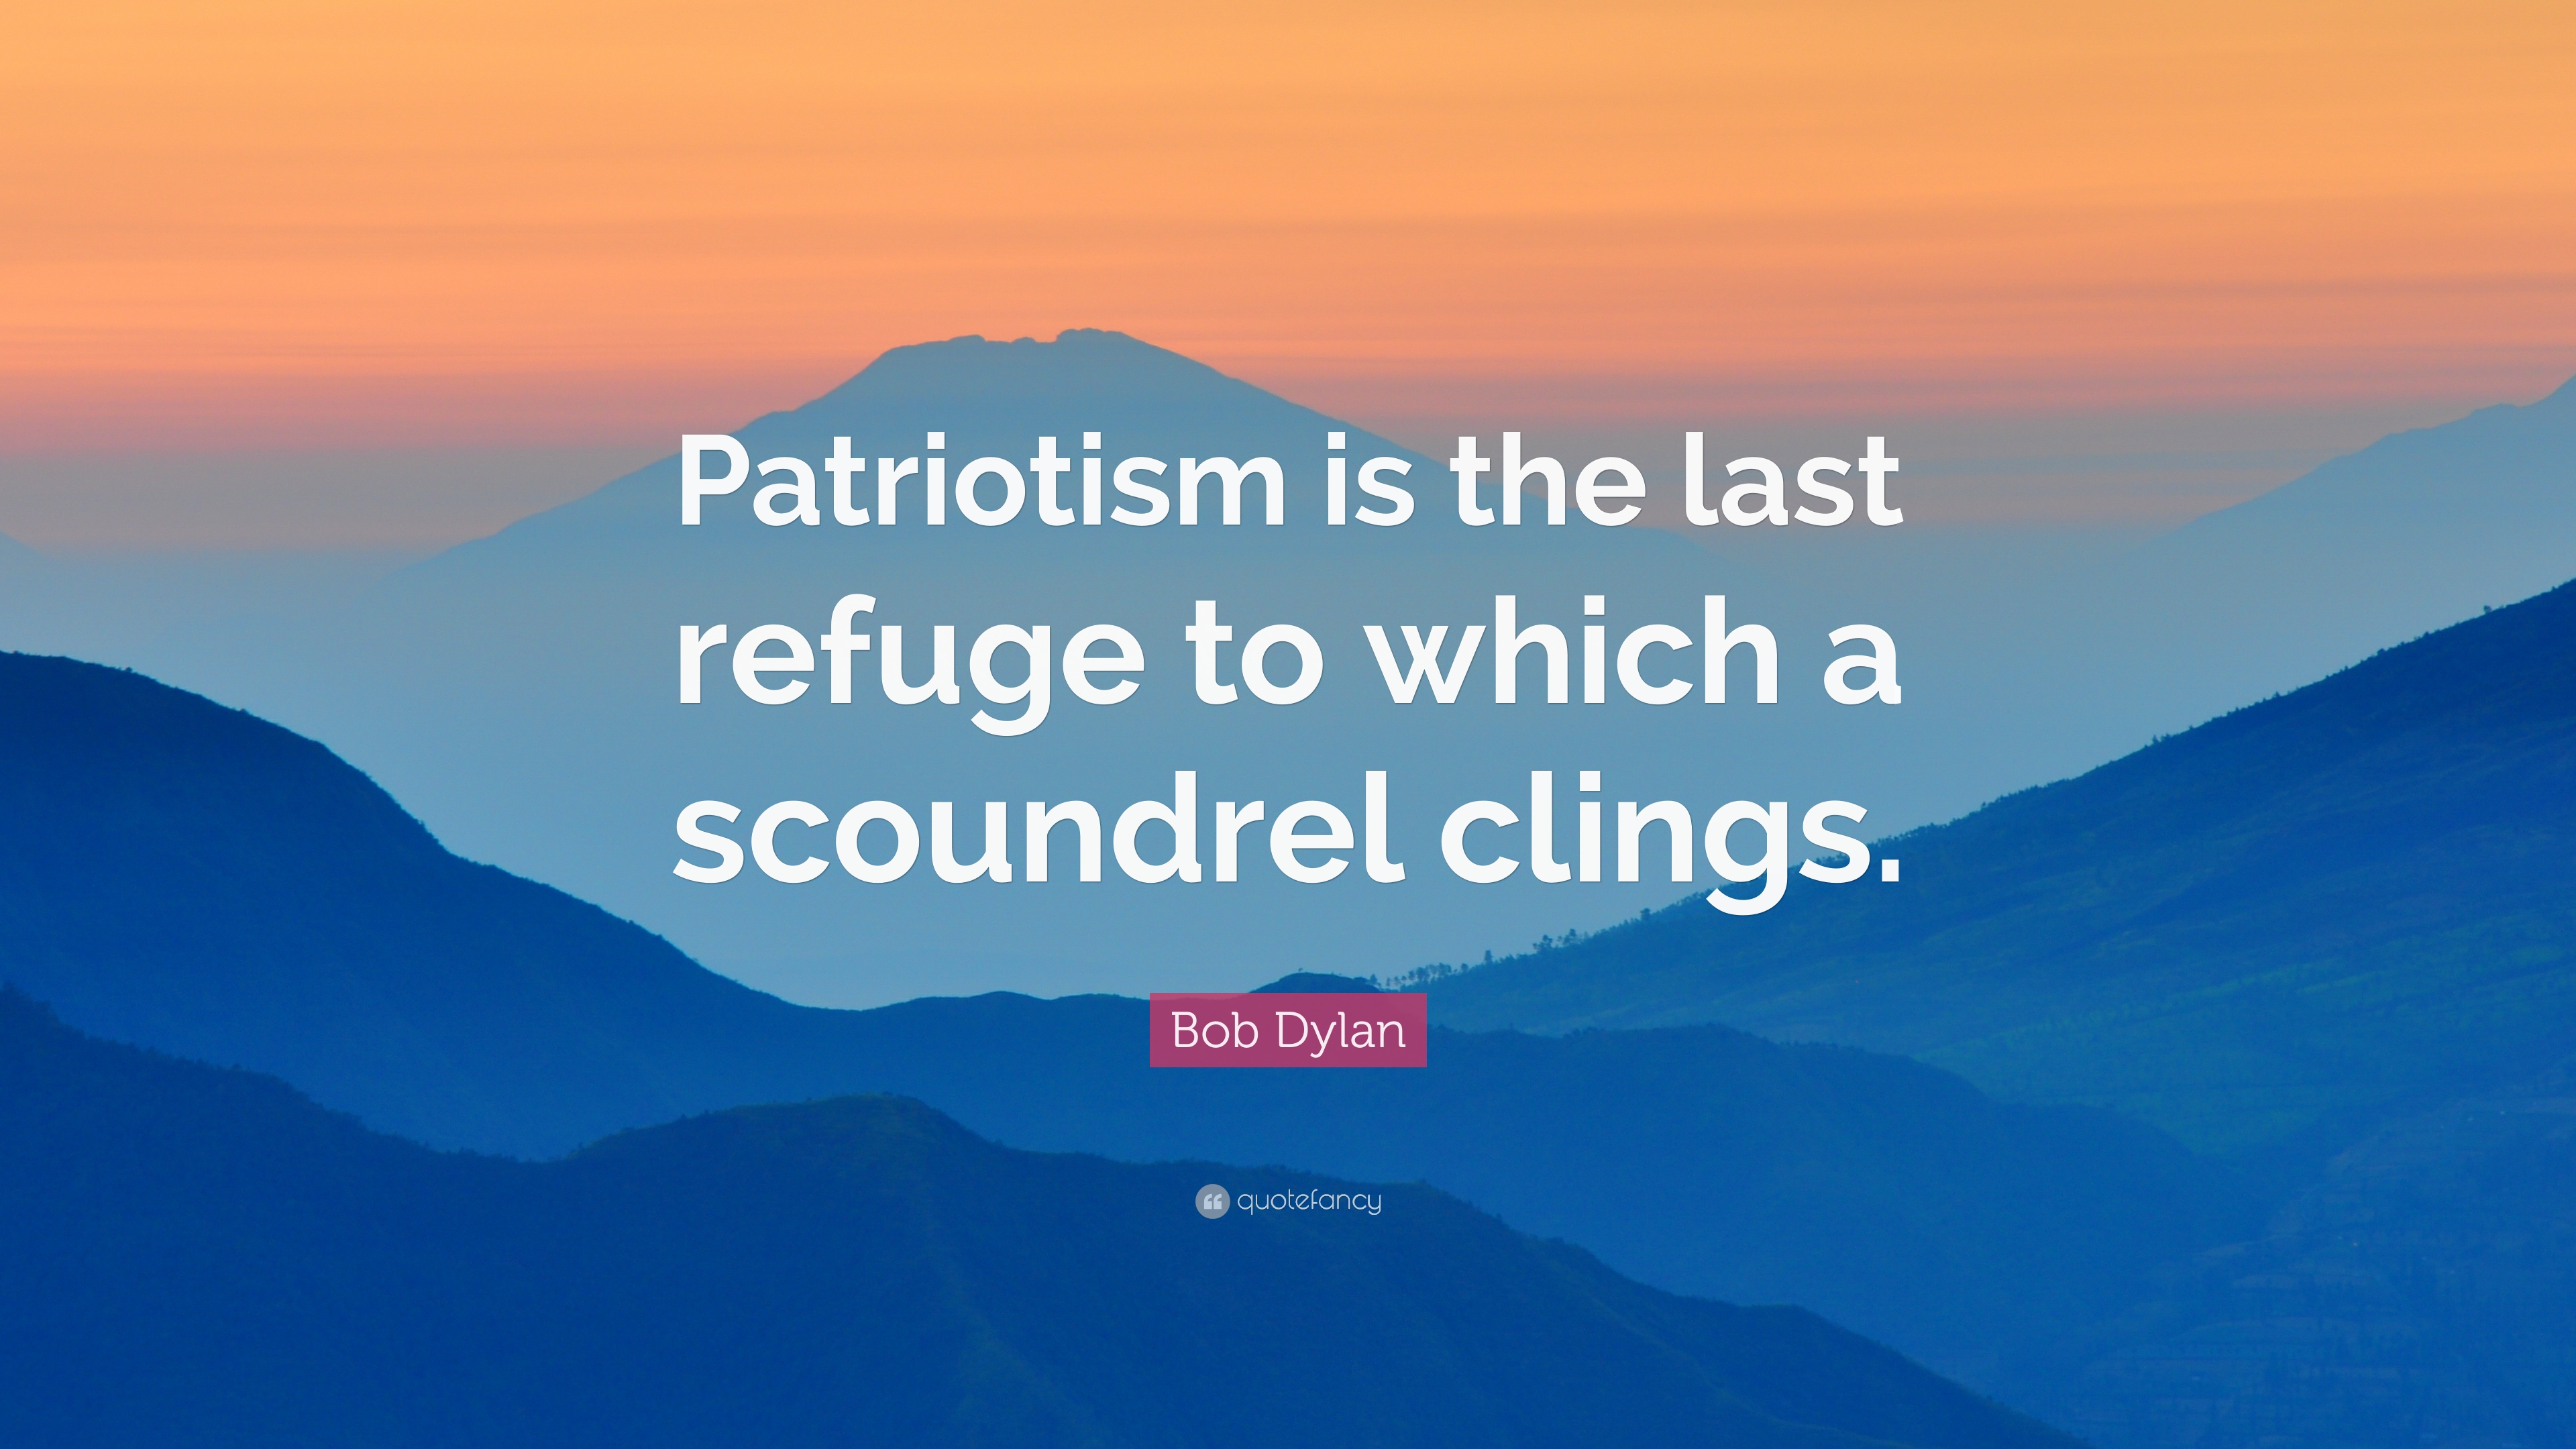 Essay on Patriotism is the last refuge of the scoundrel